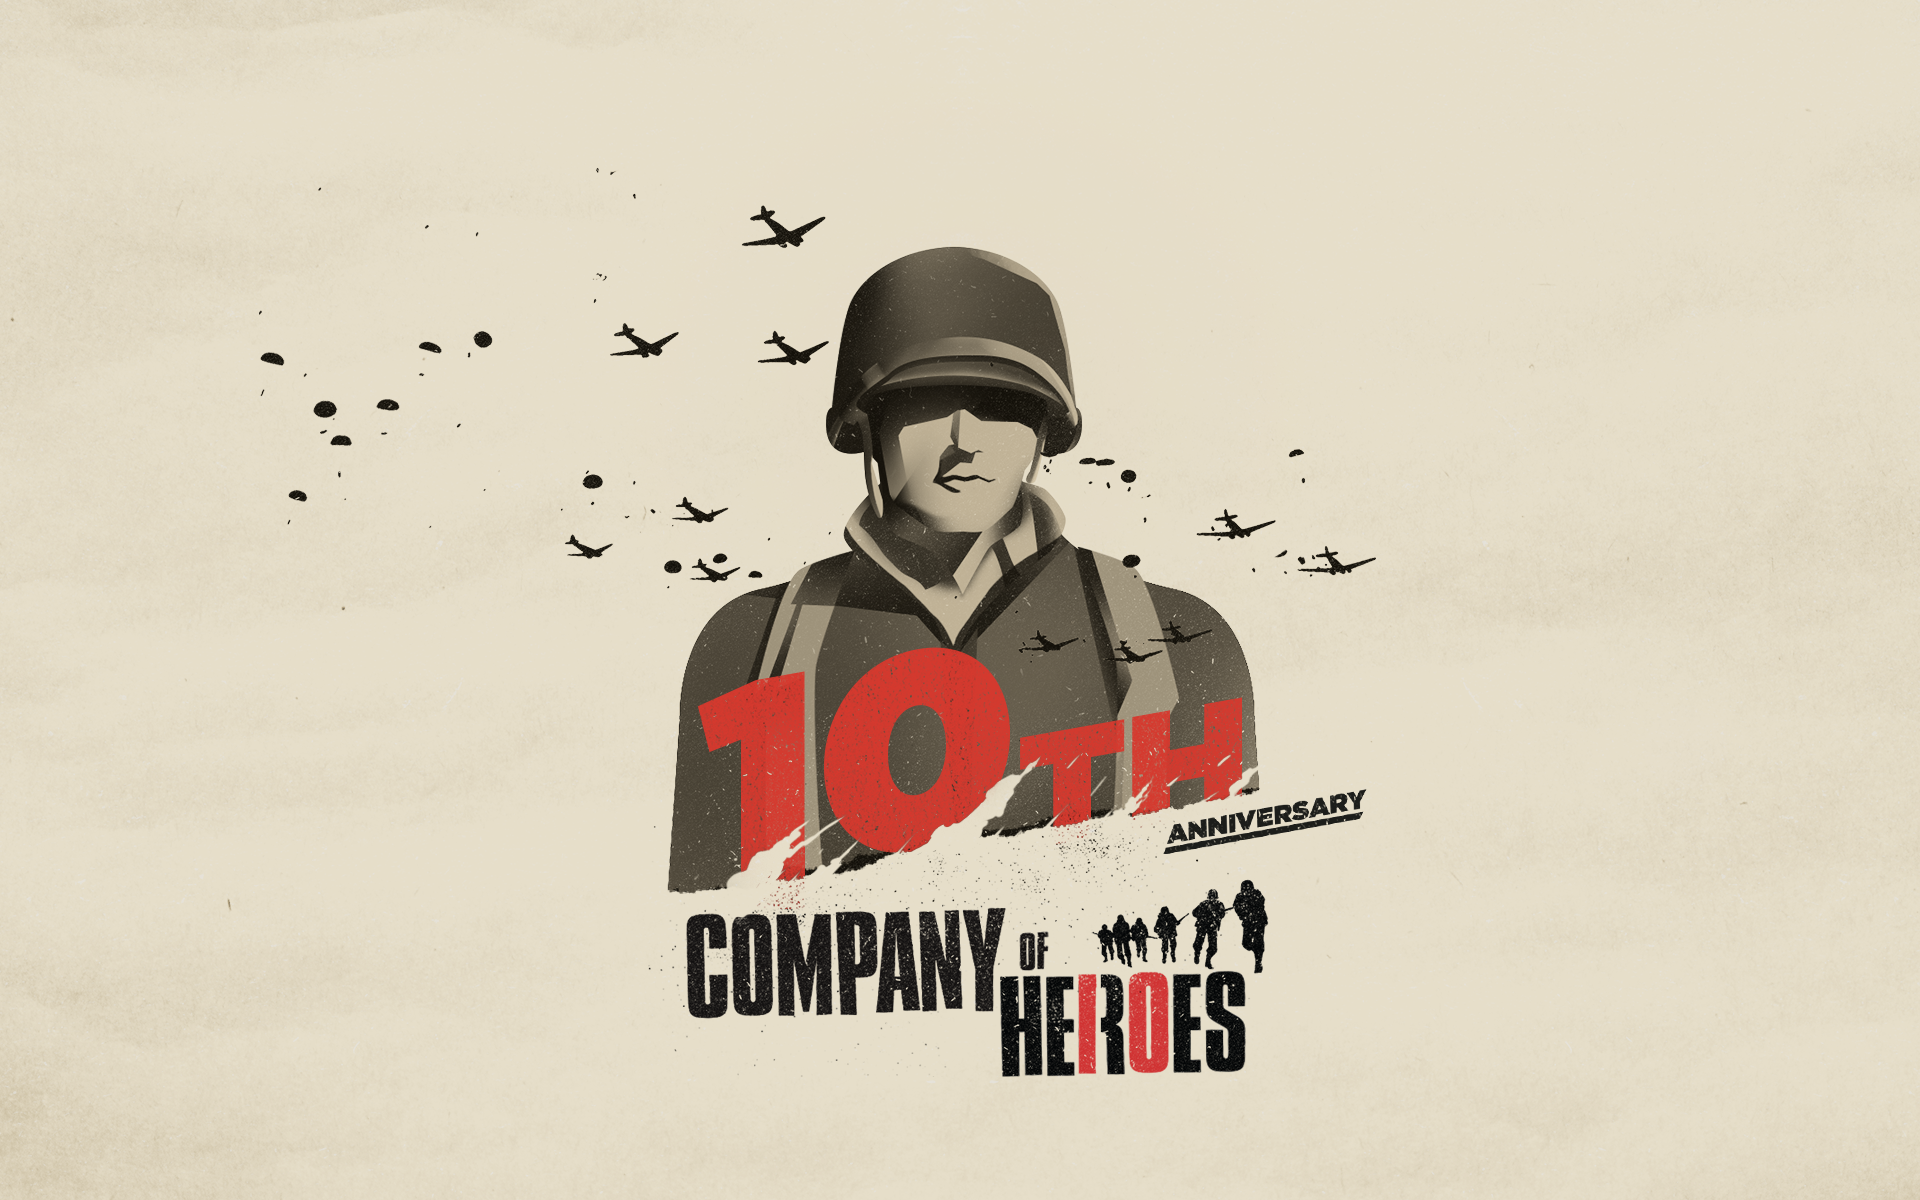 company of heroes 10th anniversary(finished) news - mod db